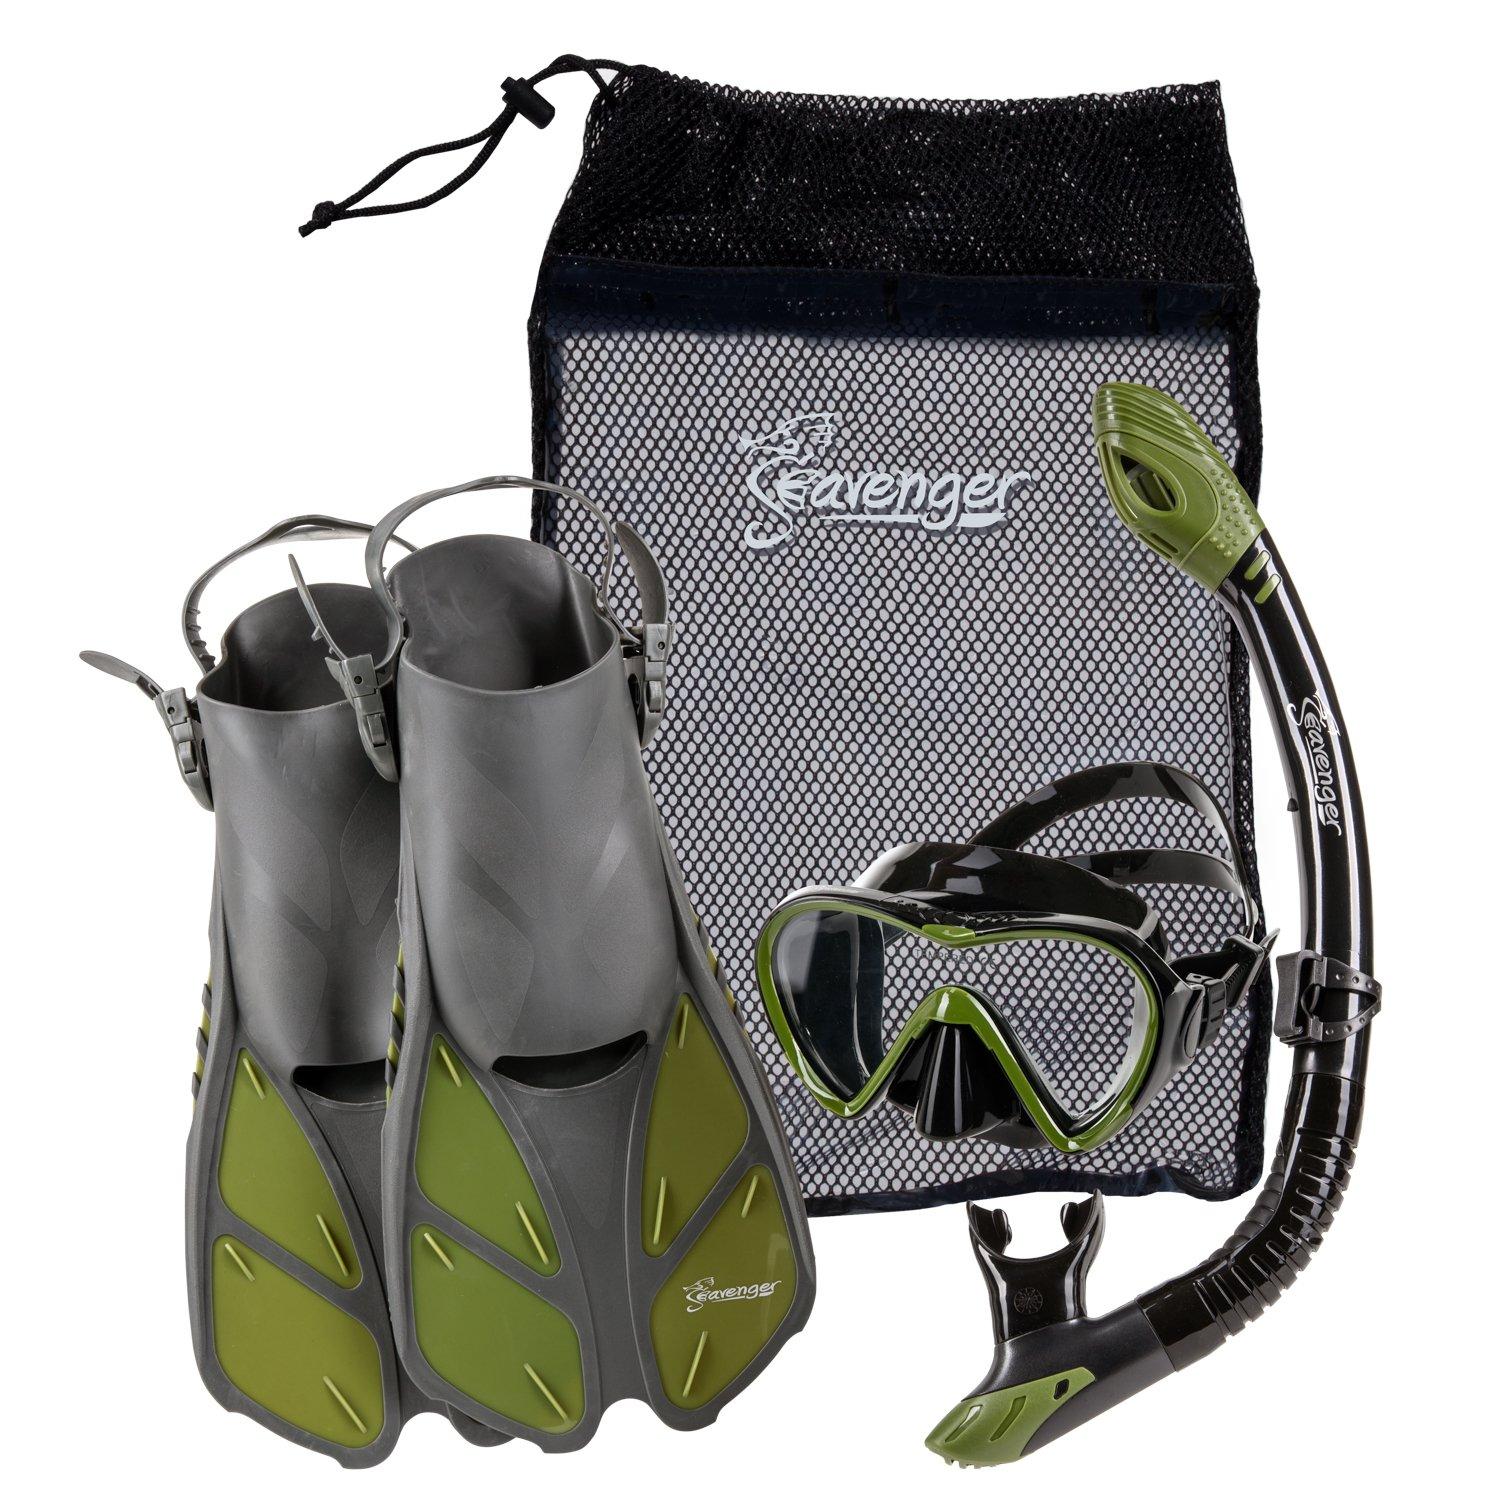 Seavenger Diving Dry Top Snorkel Set with Trek Fin, Single Lens Mask and Gear Bag, L/XL - Size 9 to 13, Gray/Black Silicon/Green